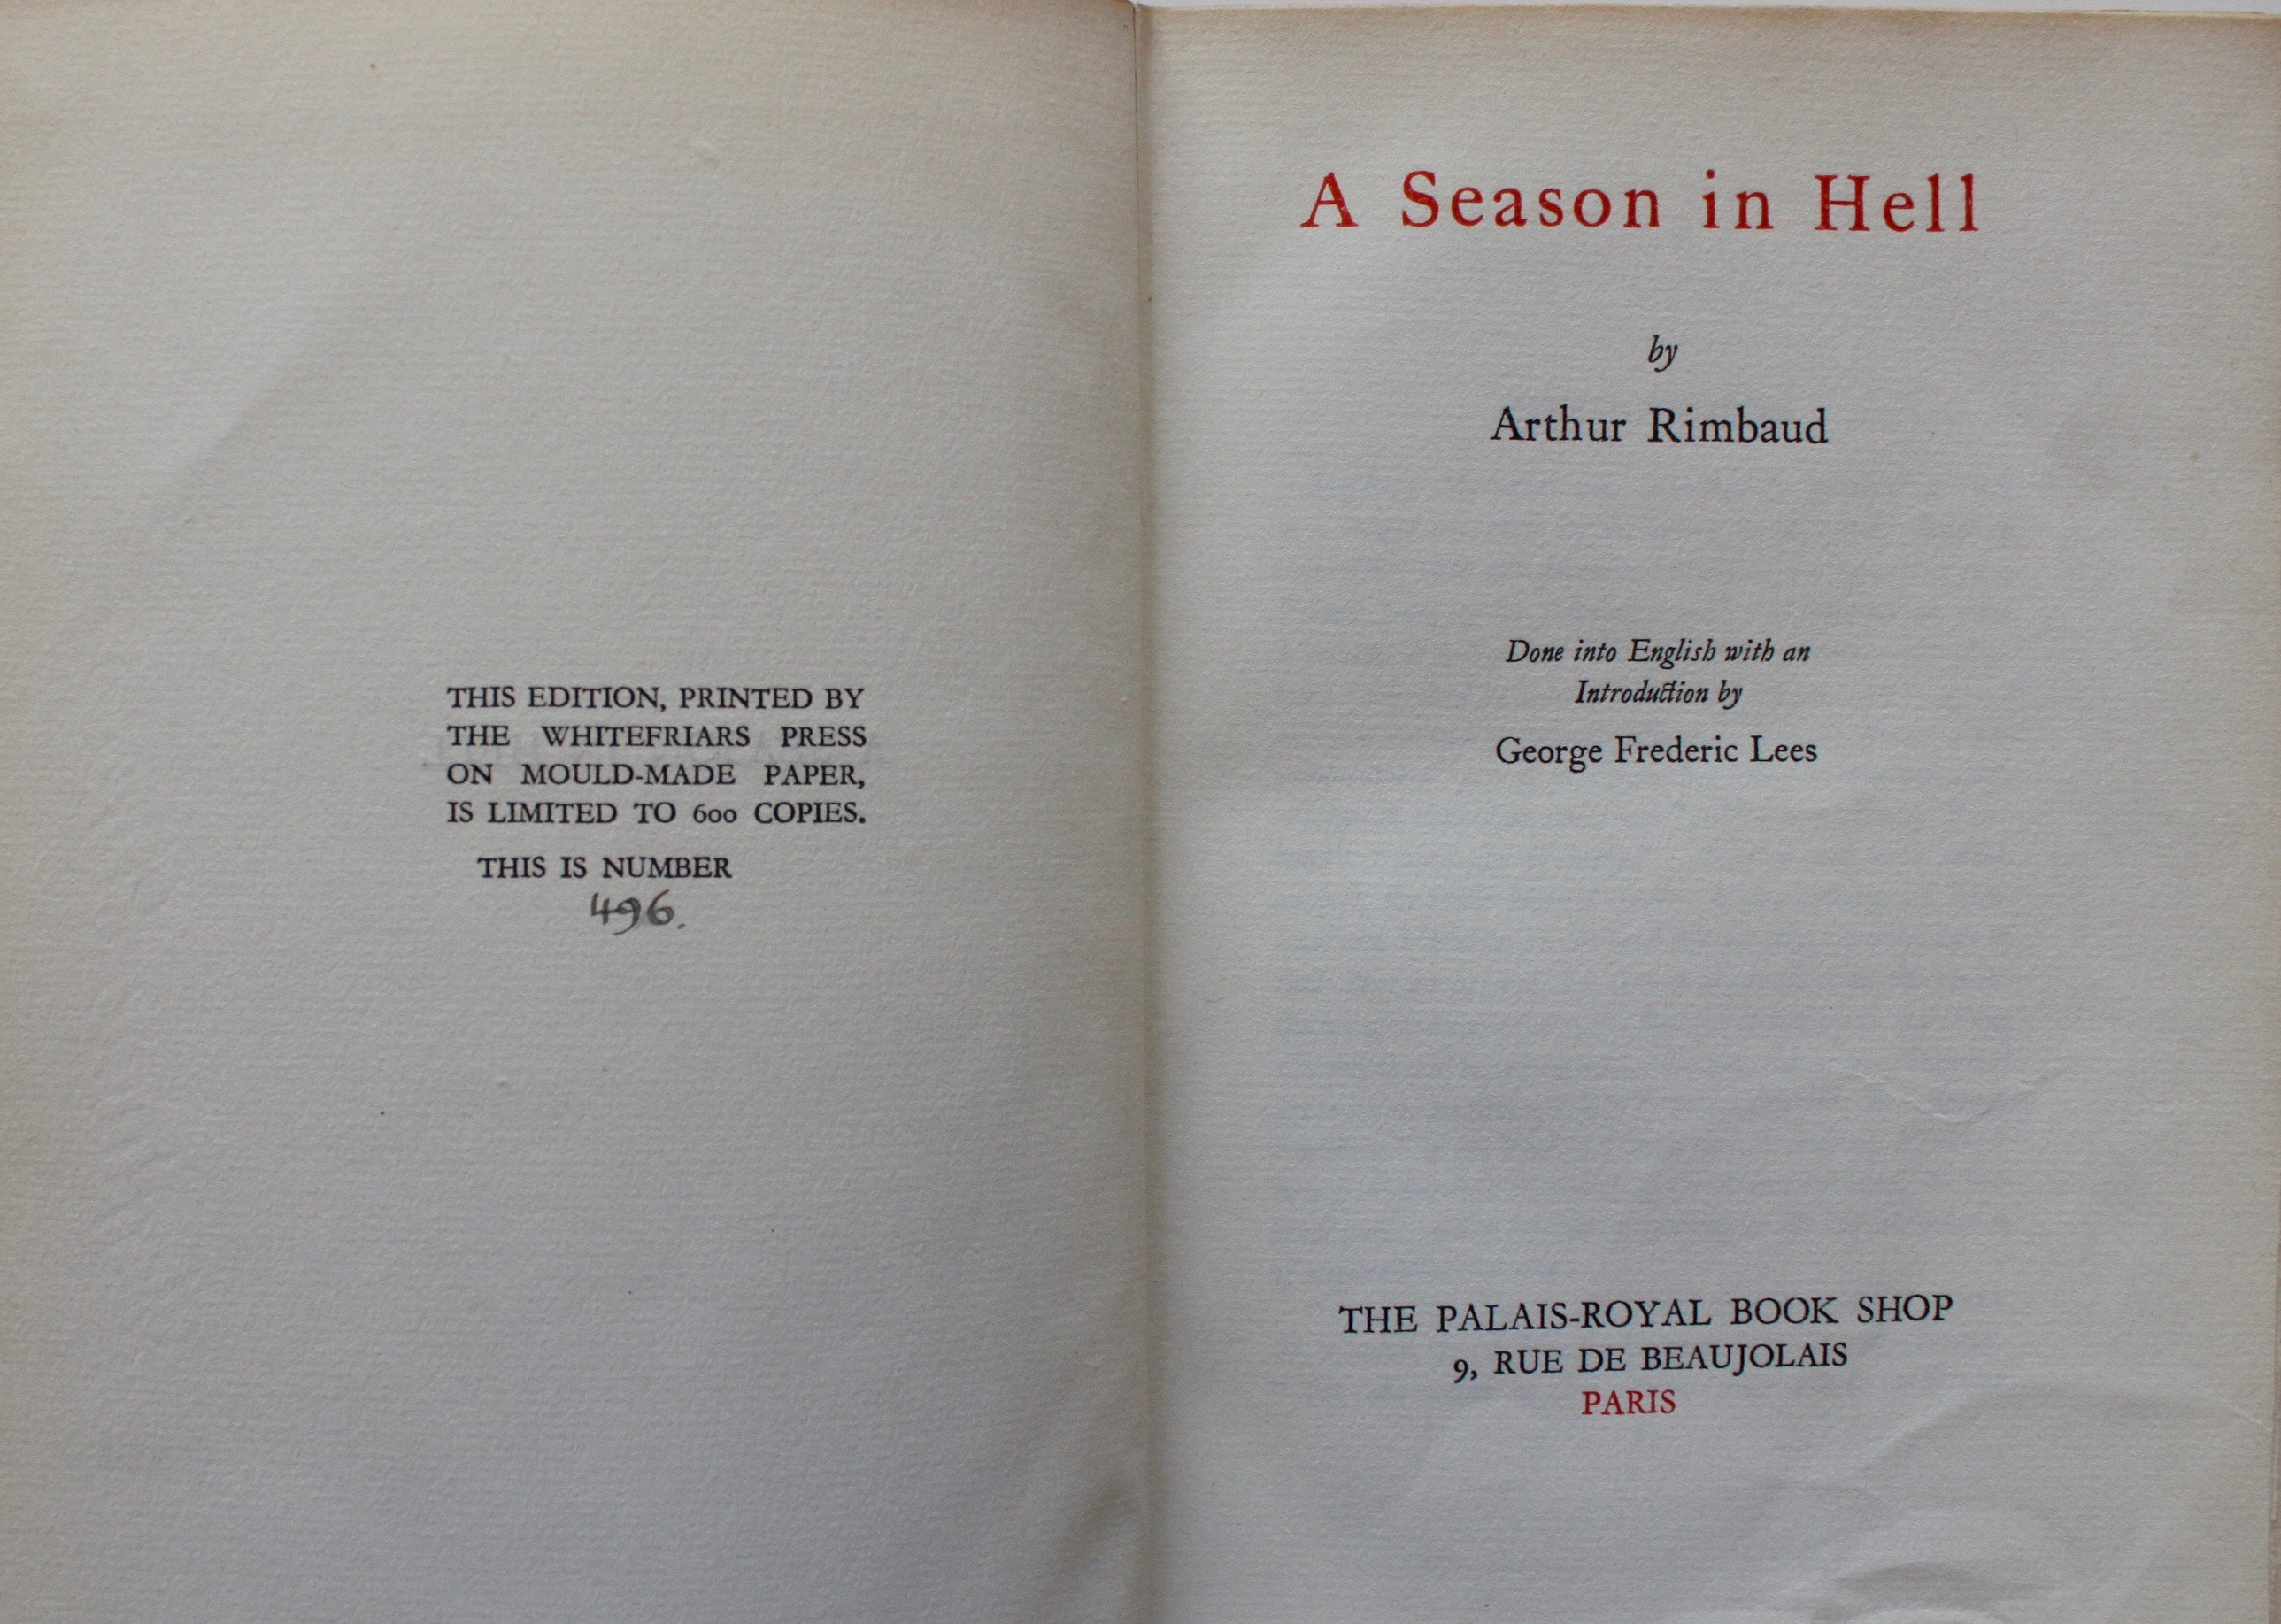 Image for A Season in Hell. Done into English with an Introduction by George Frederic Lees.